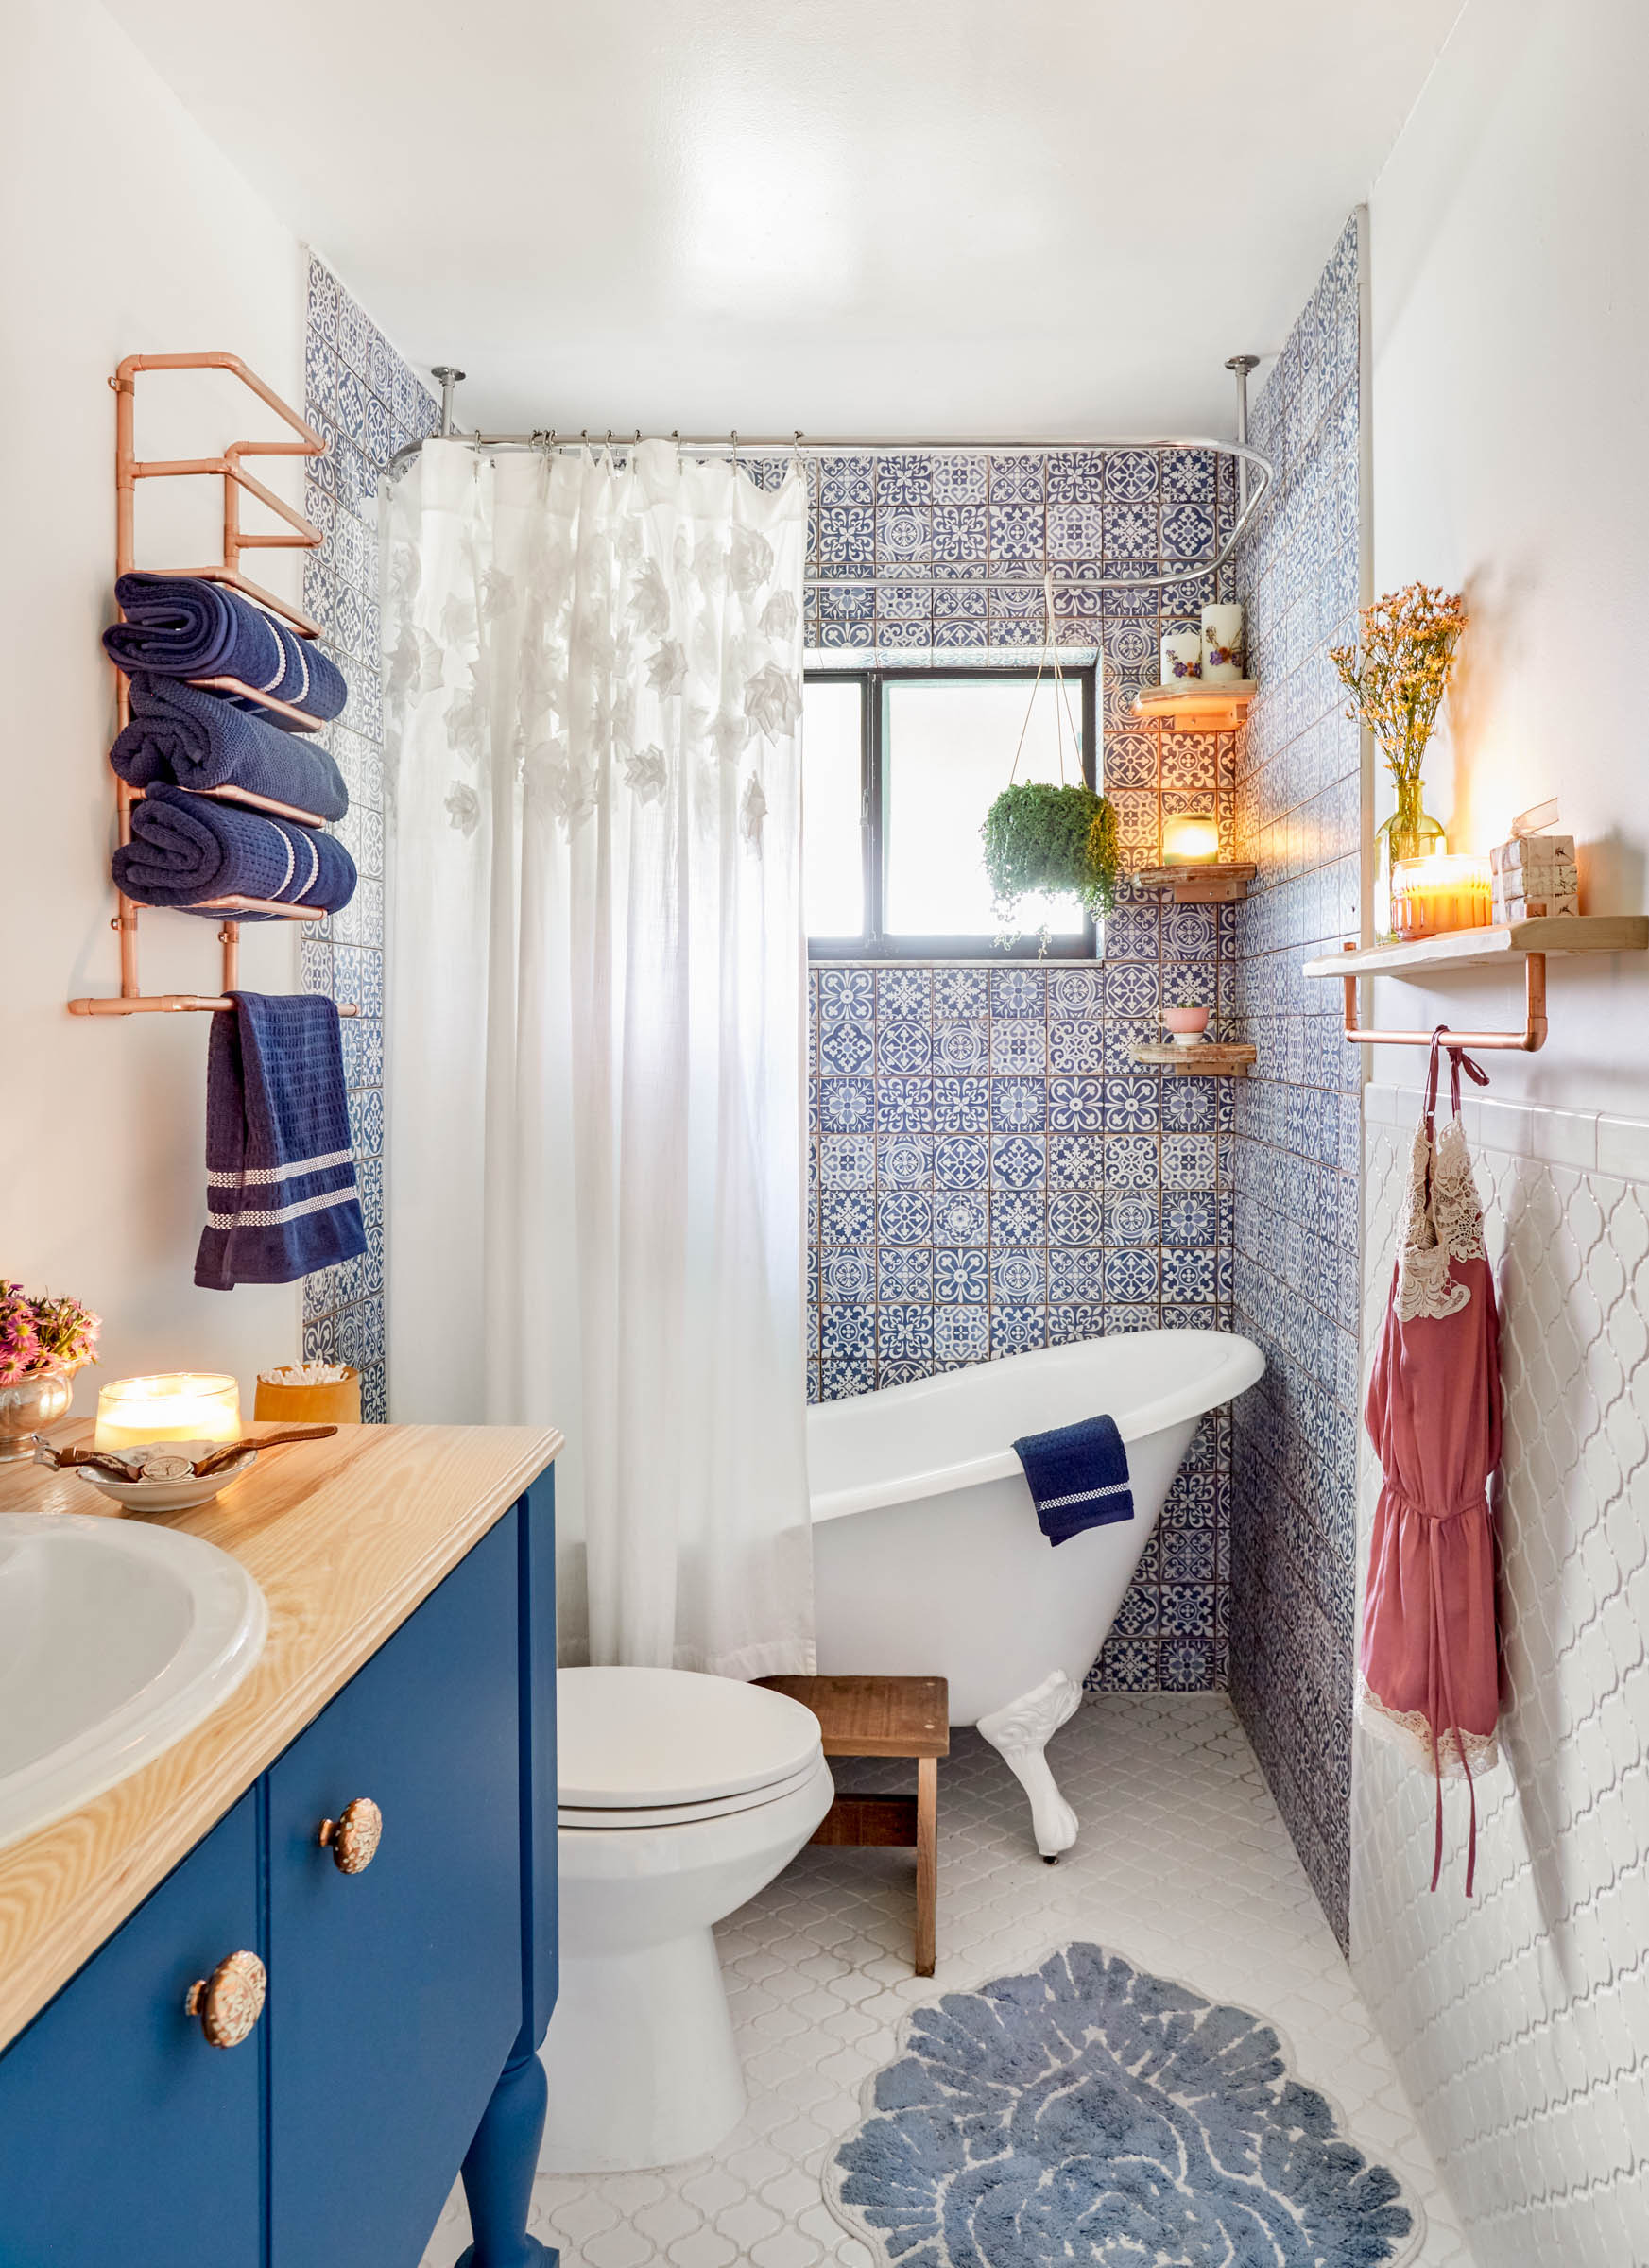 Decorating Ideas for Small Bathrooms Luxury 50 Best Small Bathroom Decorating Ideas Tiny Bathroom